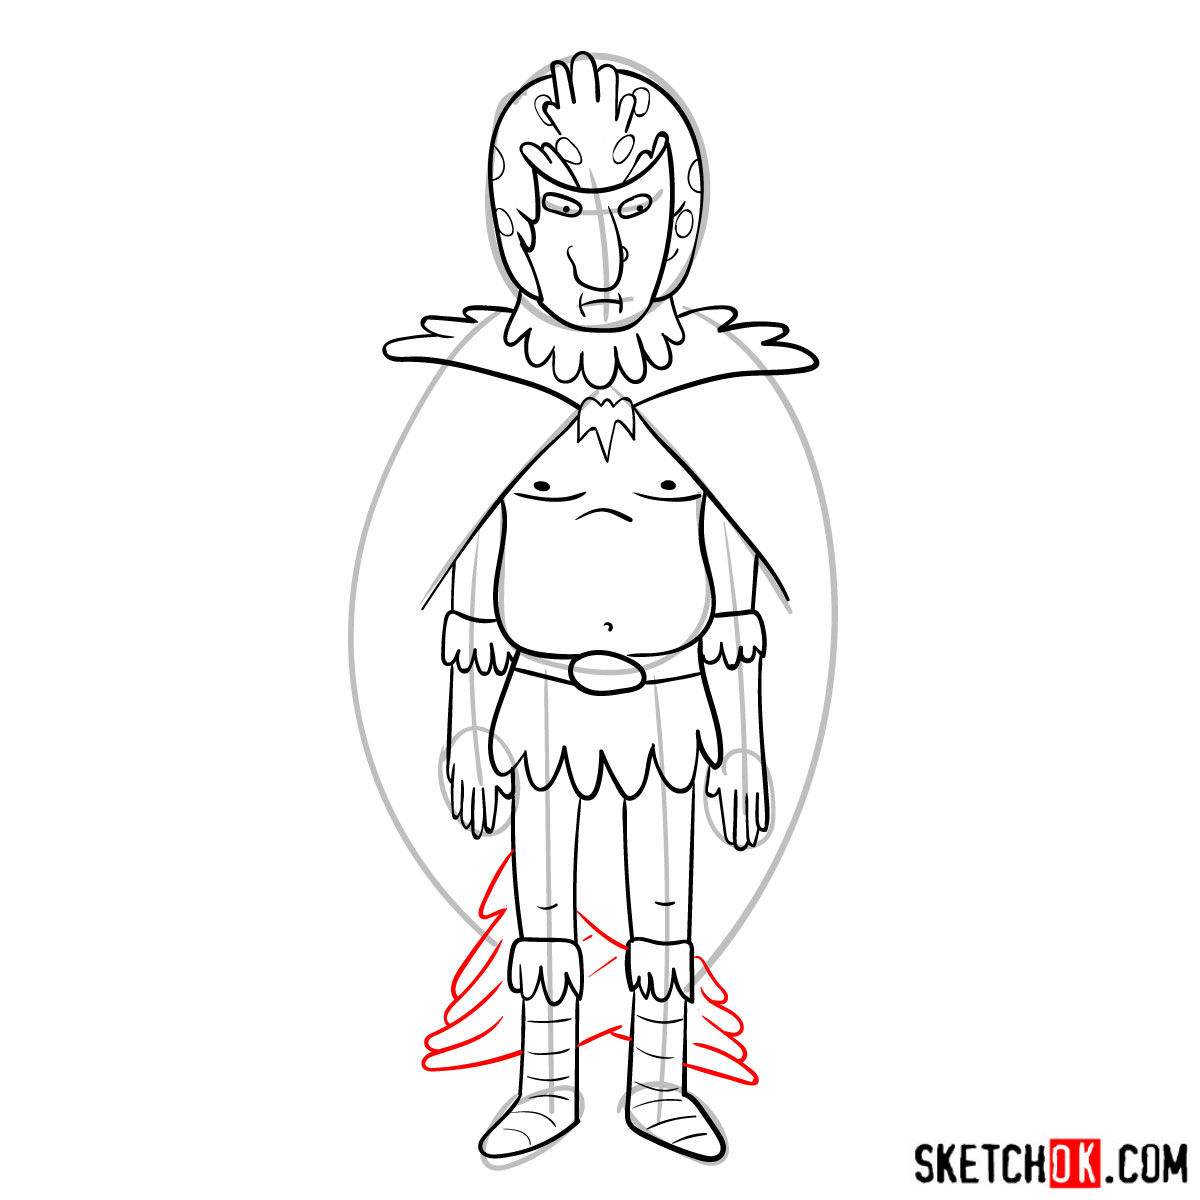 How to draw Birdperson from Rick and Morty series - step 11